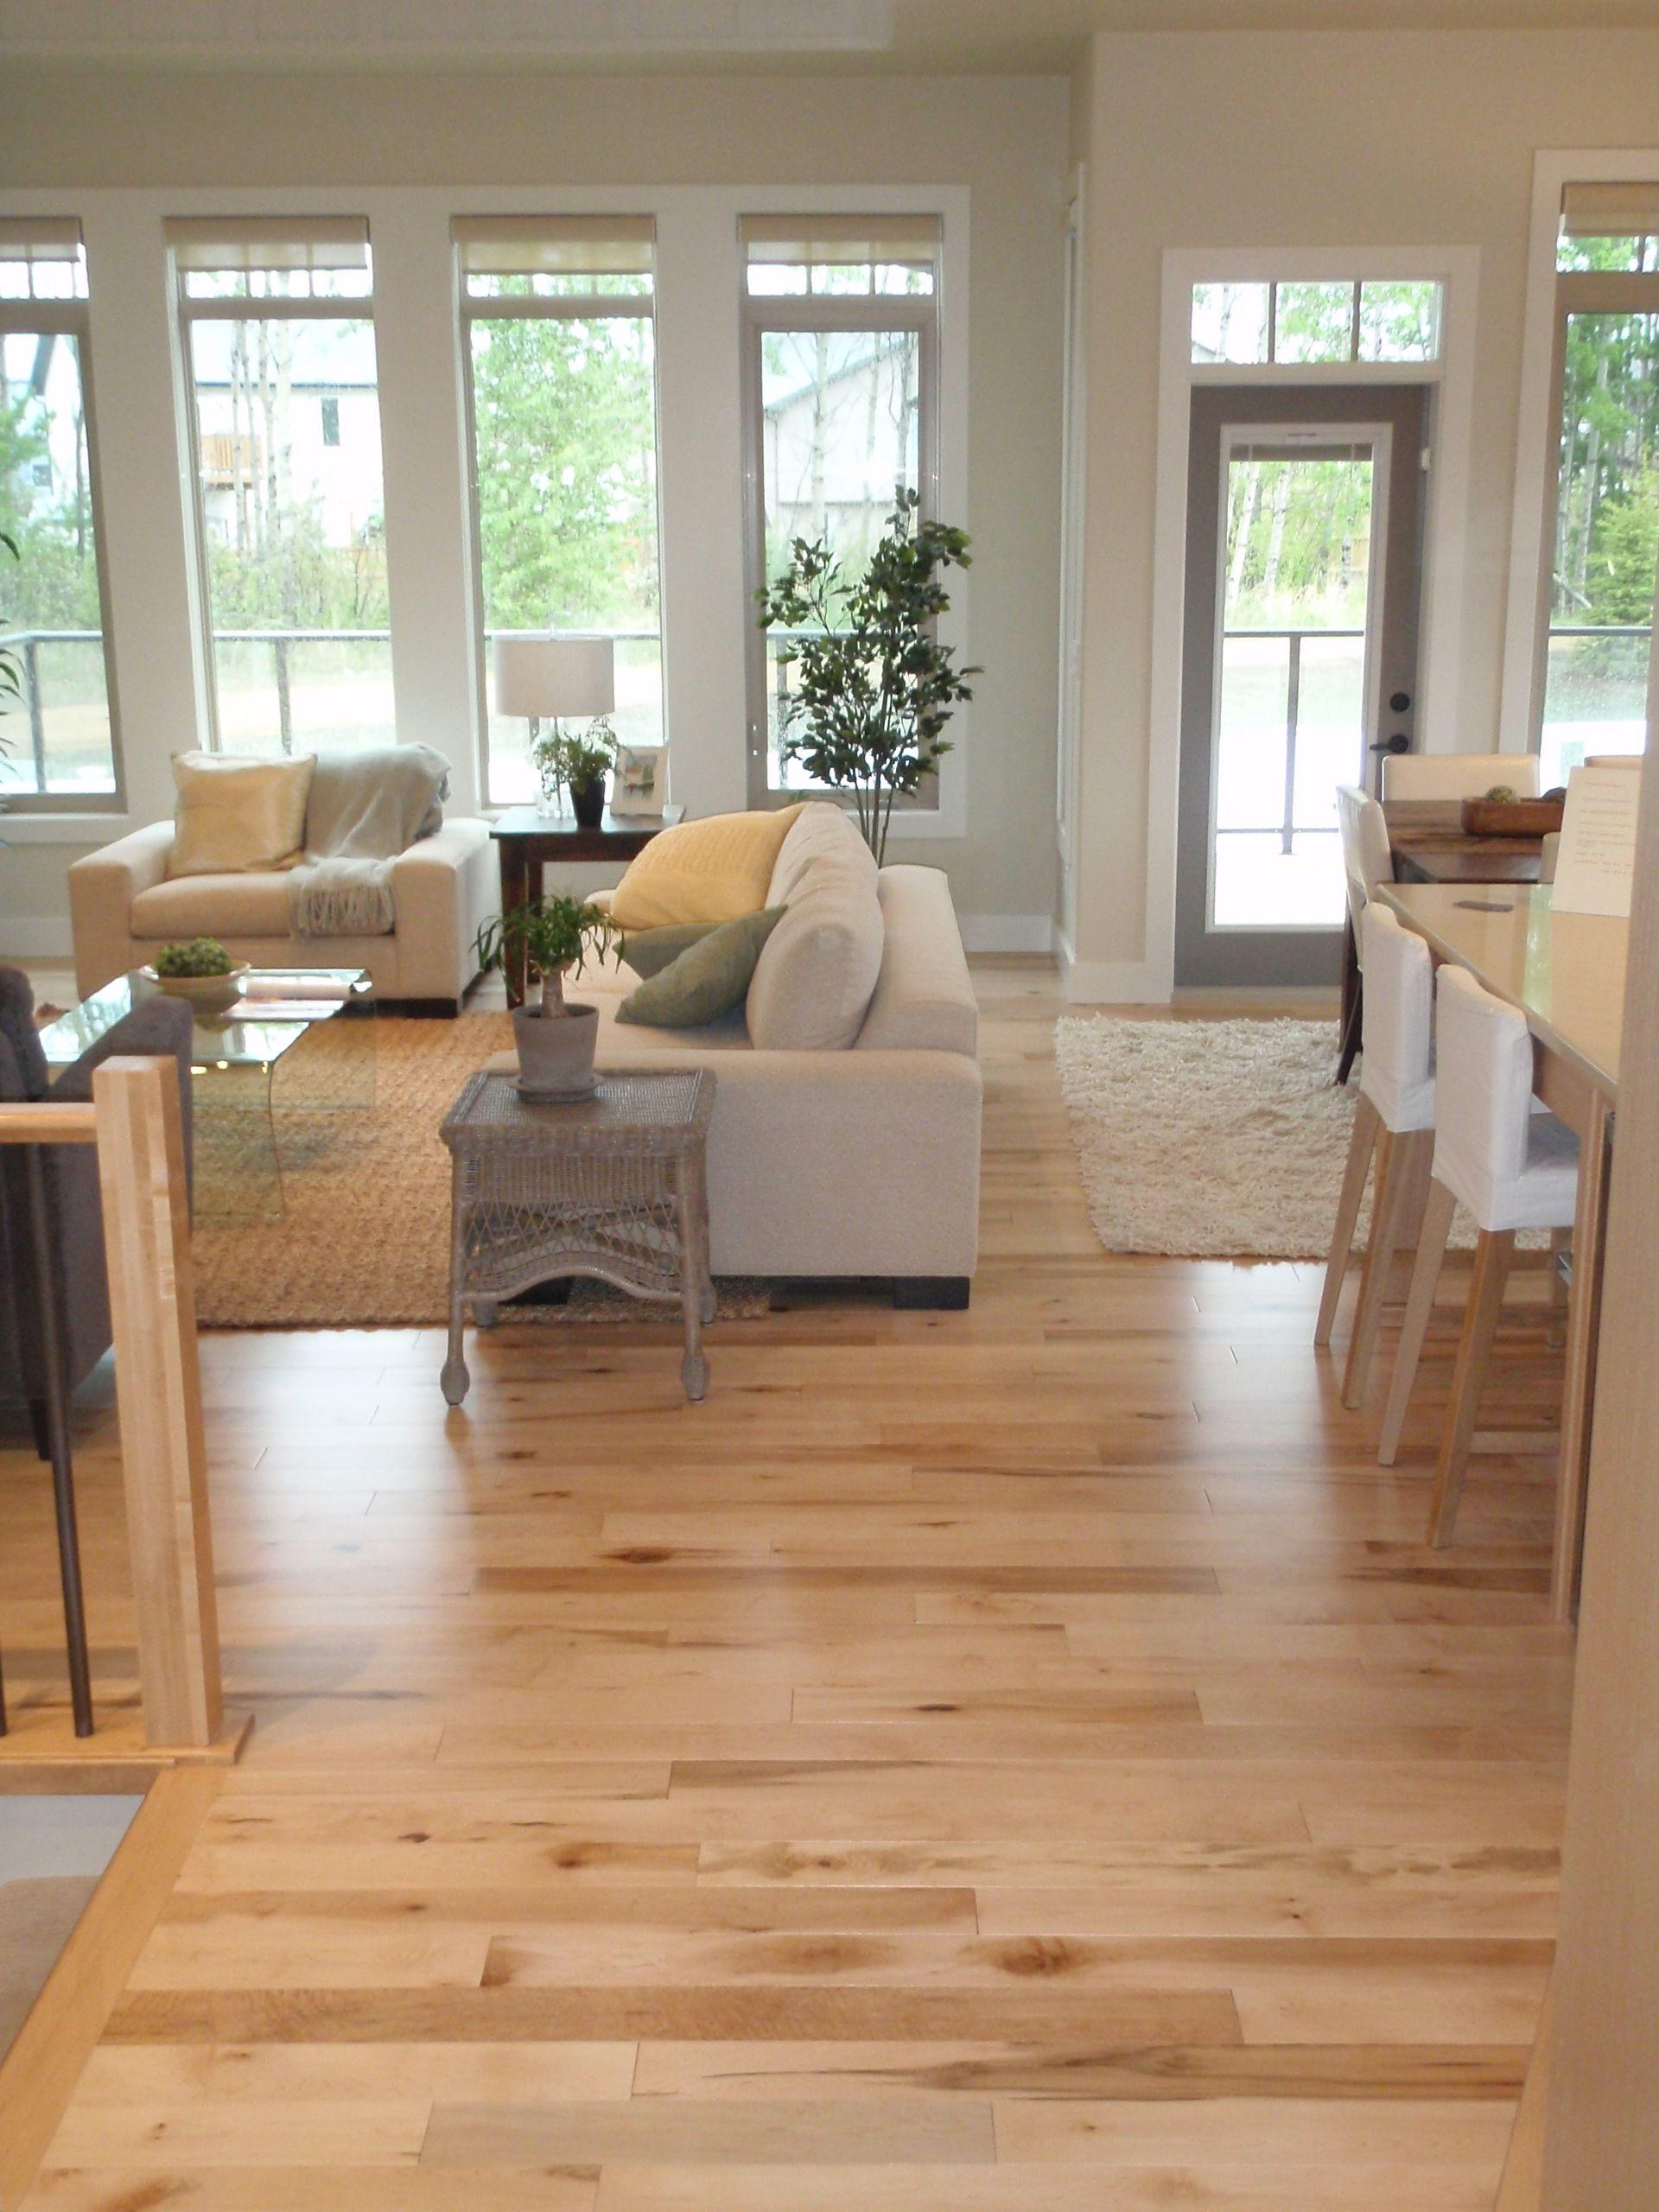 hardwood floors | hardwood flooring. love how the light wood makes